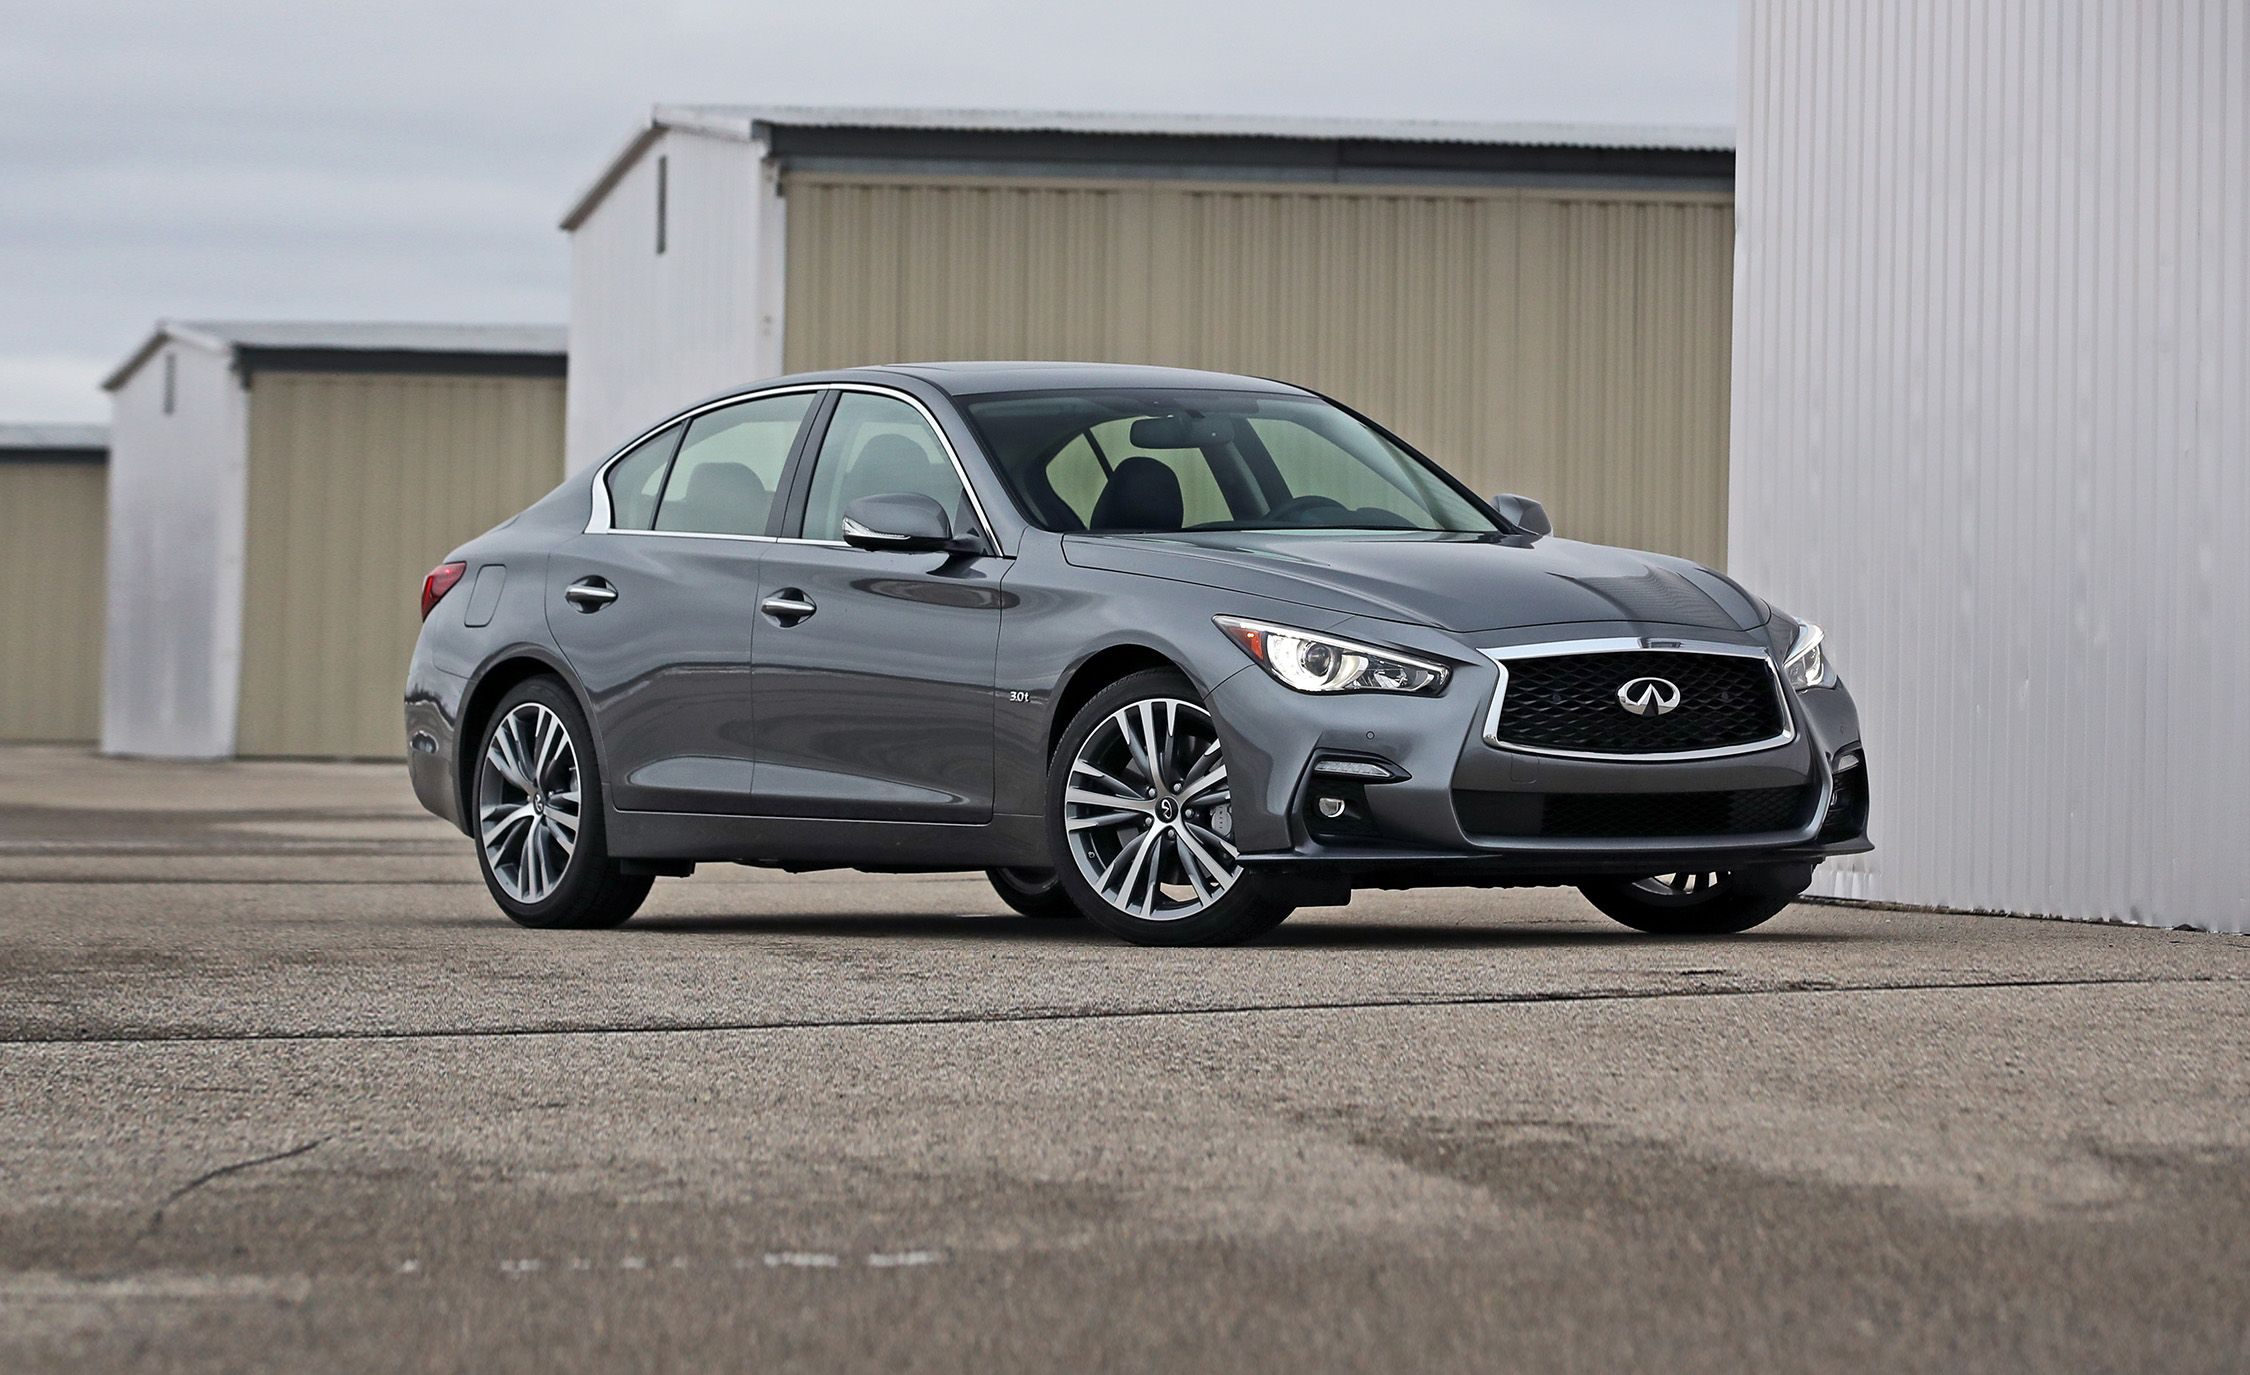 2018 Infiniti Q50 In Depth Model Review Car And Driver